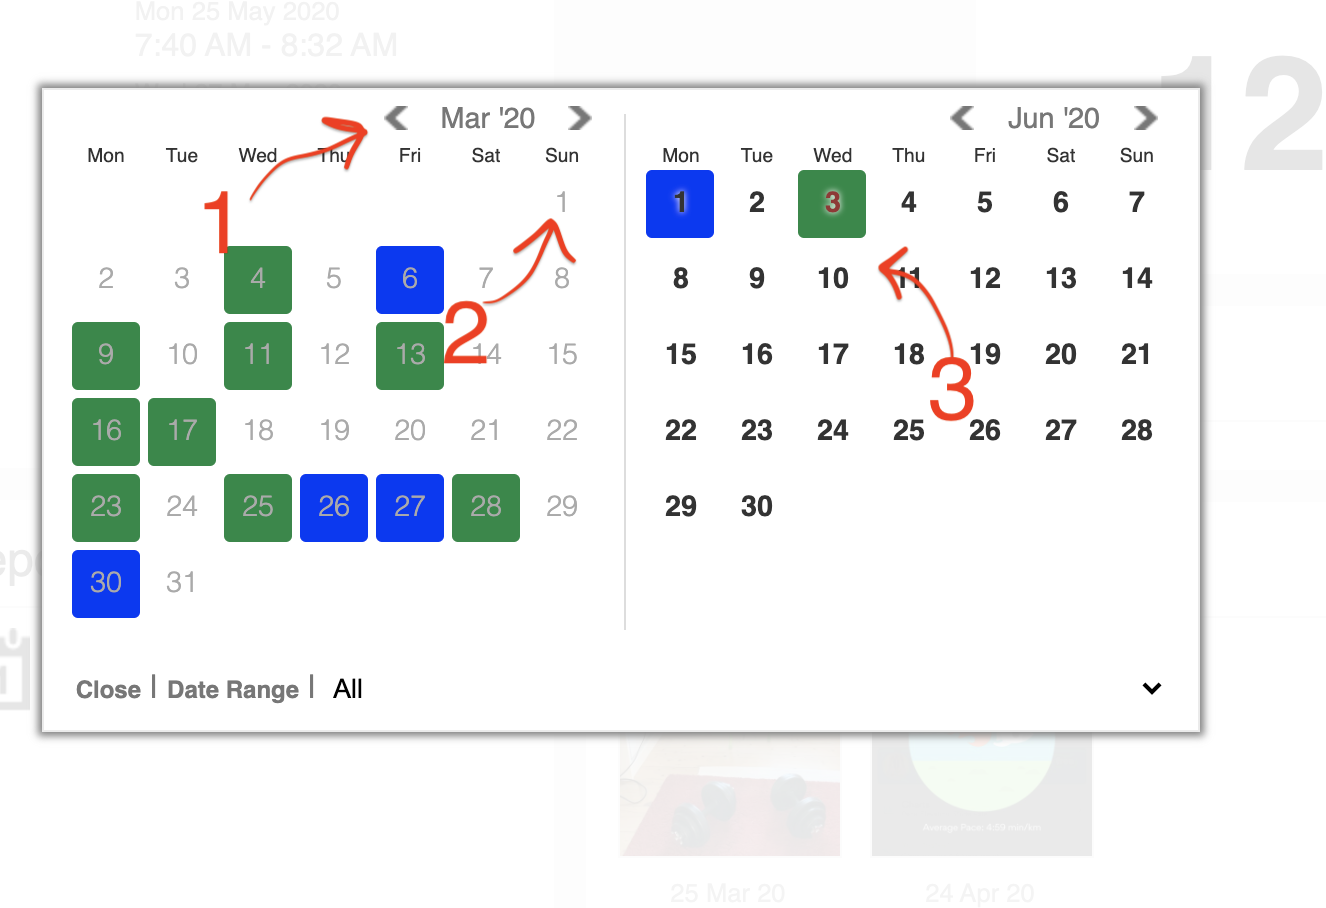 Navigate back and click the earliest date you want, then the latest date.